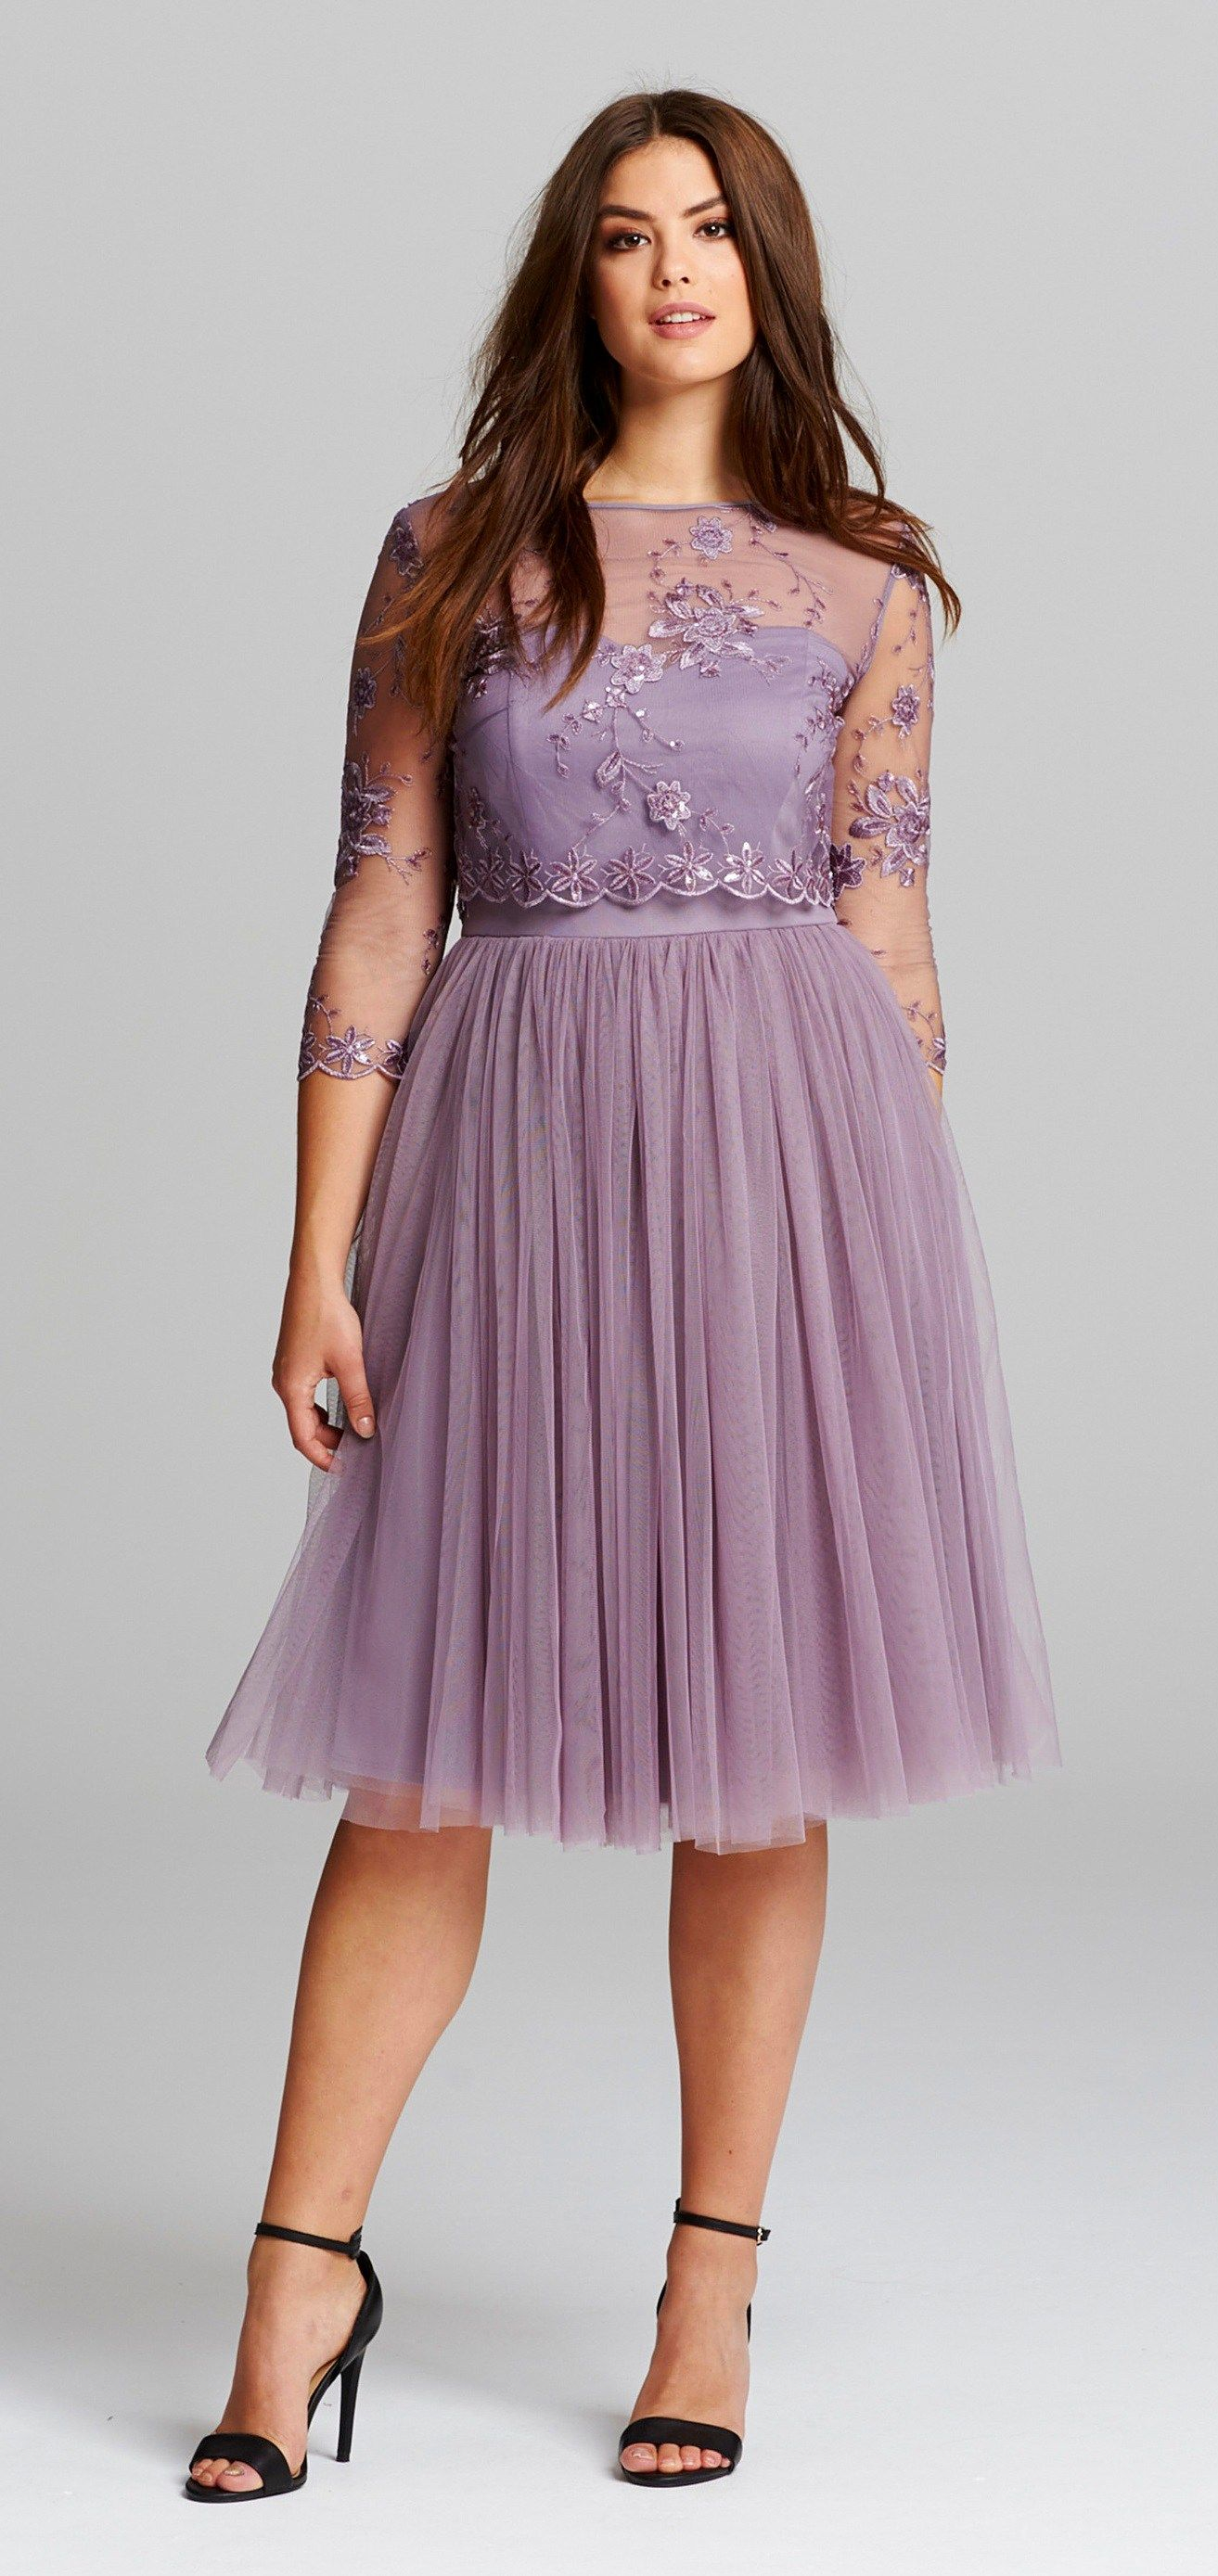 86368894fd7fd 45 Plus Size Wedding Guest Dresses {with Sleeves} - Plus Size Cocktail  Dresses - alexawebb.com